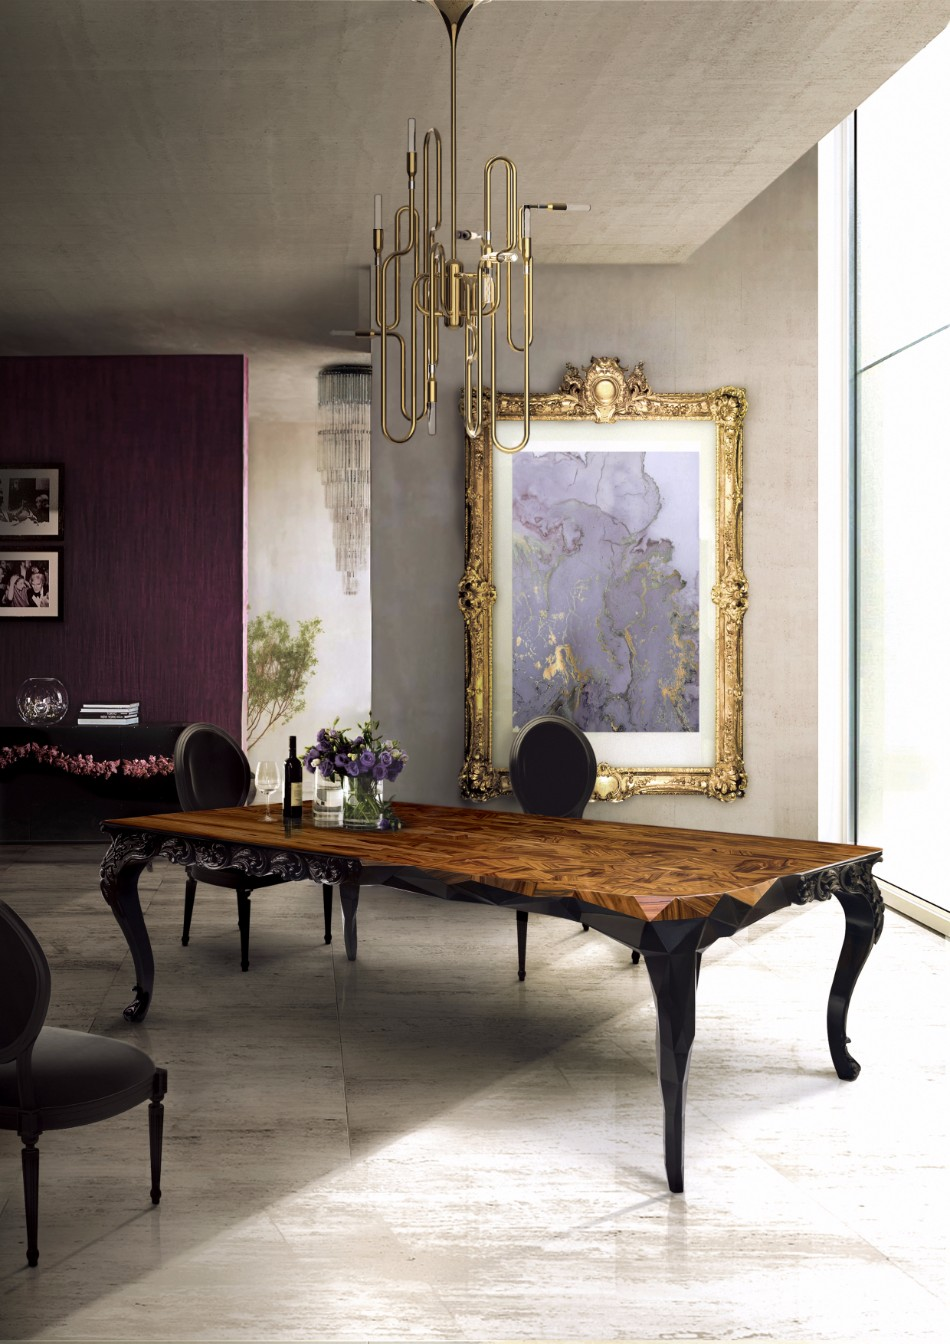 luxury dining tables Top 10 Luxury Dining Tables That Speak For Themselves Top 10 Luxury Dining Tables That Speak For Themselves 12